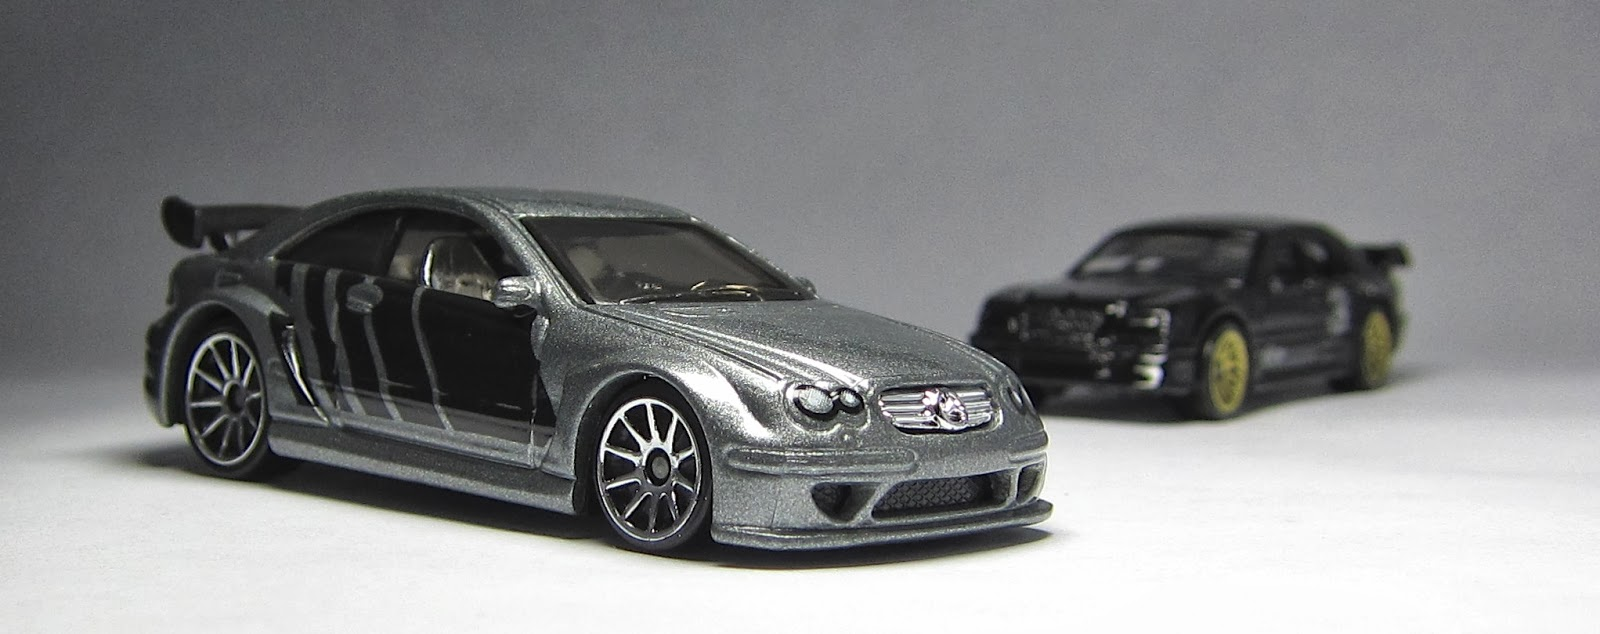 The lamley group model of the day hot wheels mercedes for Hot wheels mercedes benz